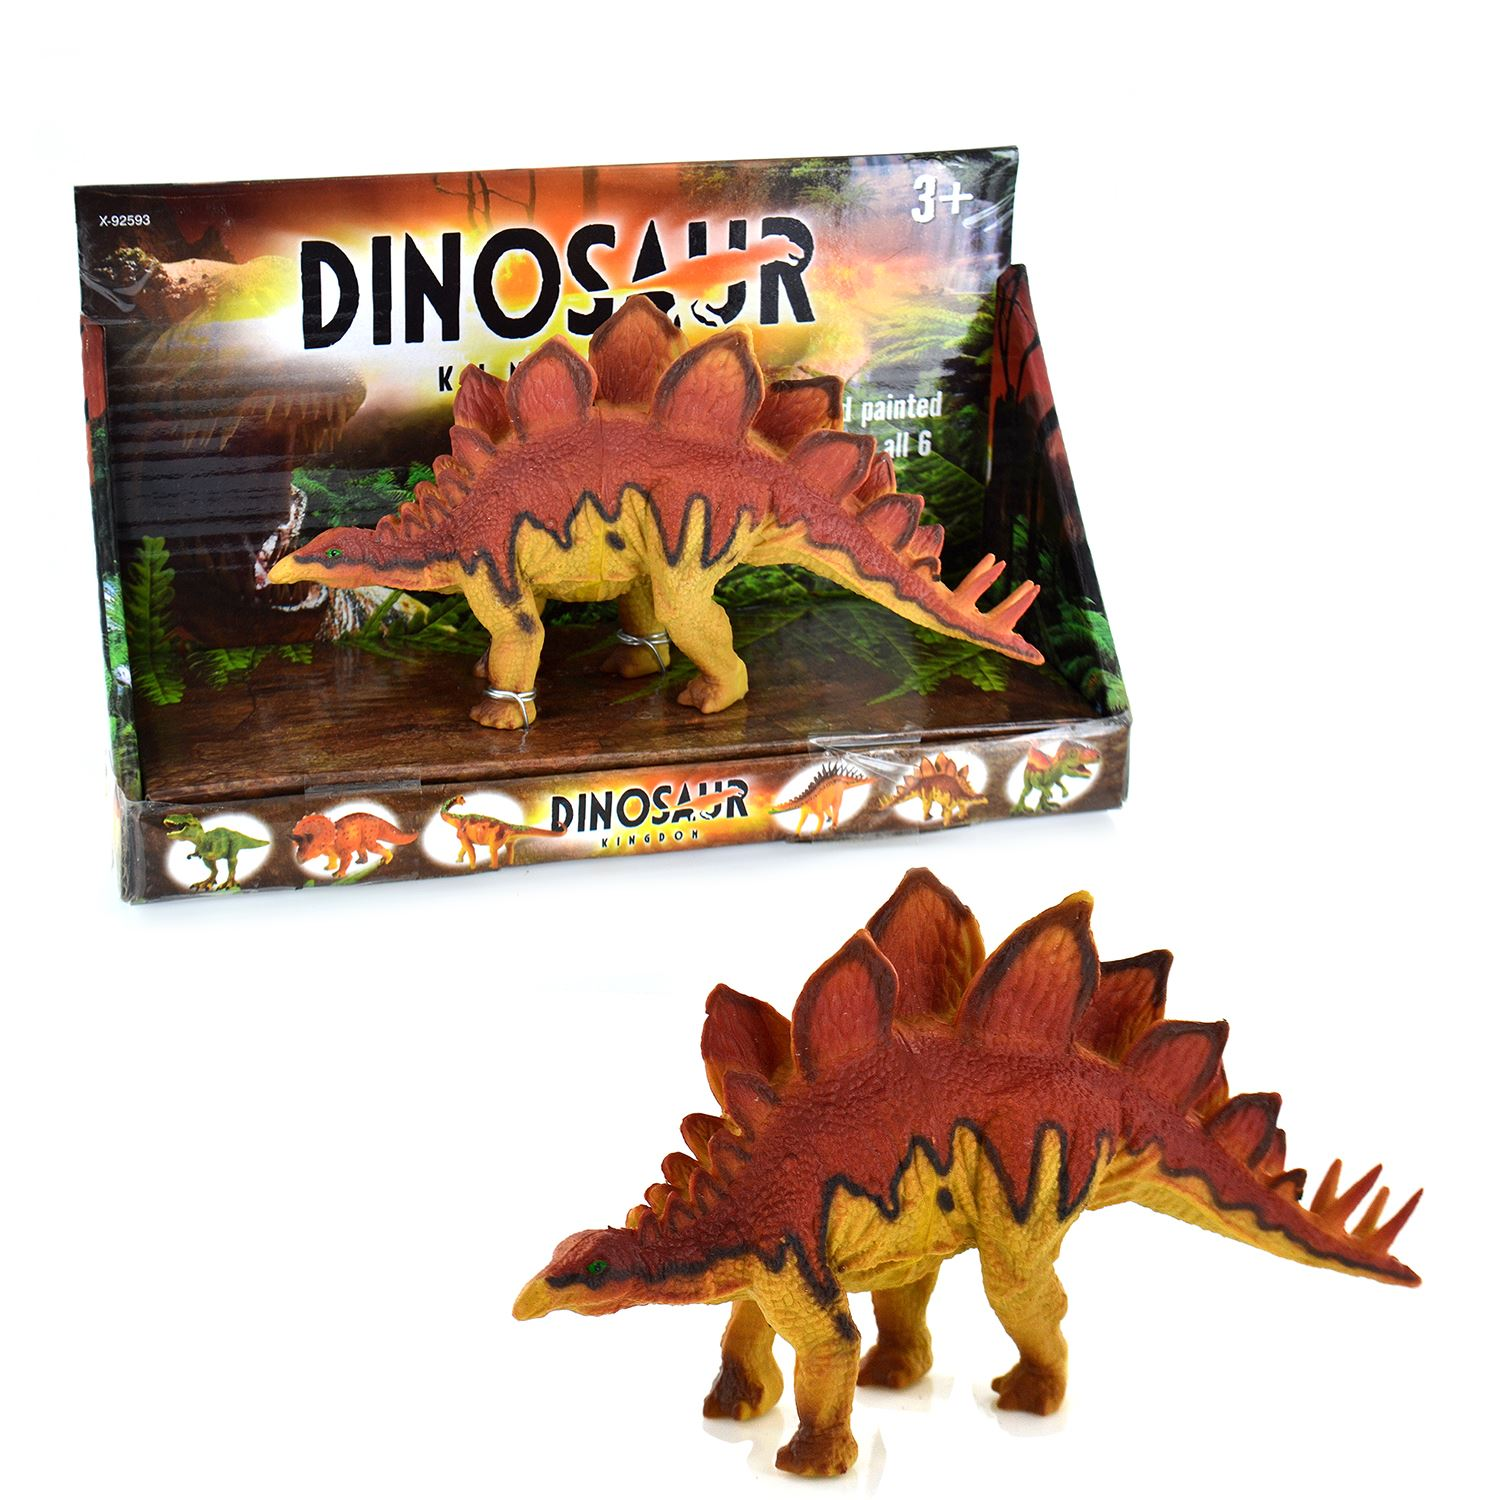 6 Dinosaur Playset Toy Animal Action Figures Set Model Kids Jungle